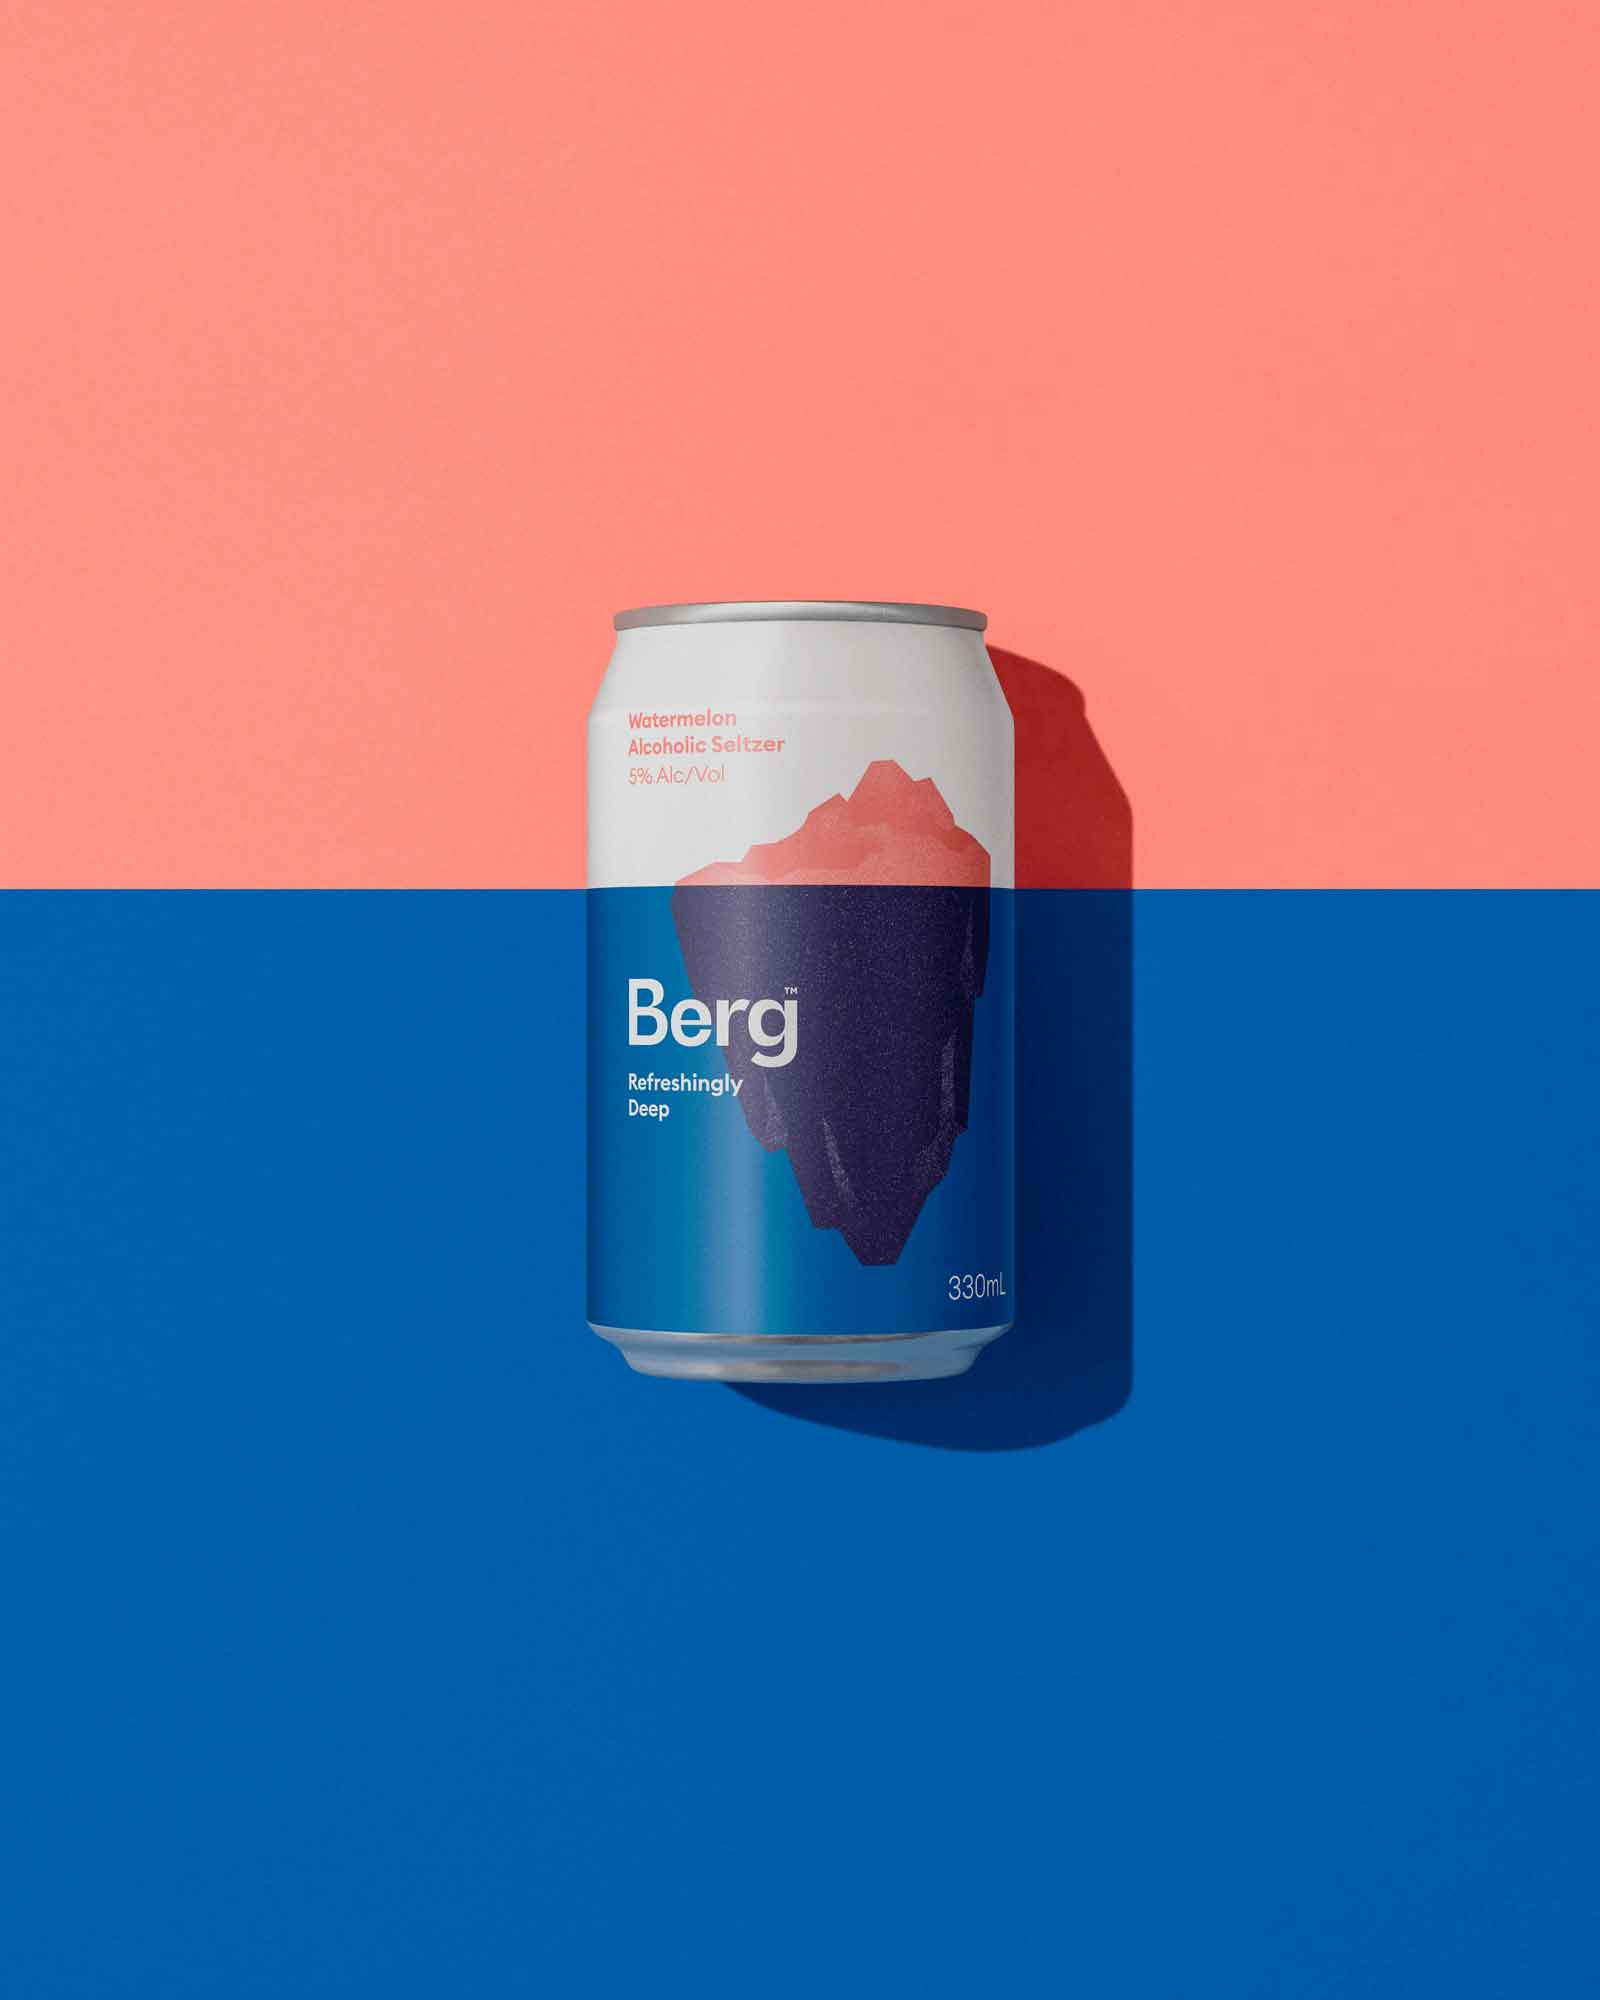 Refreshingly Deep Brand and Packaging Design for Berg Alcoholic Seltzer by Marx Design